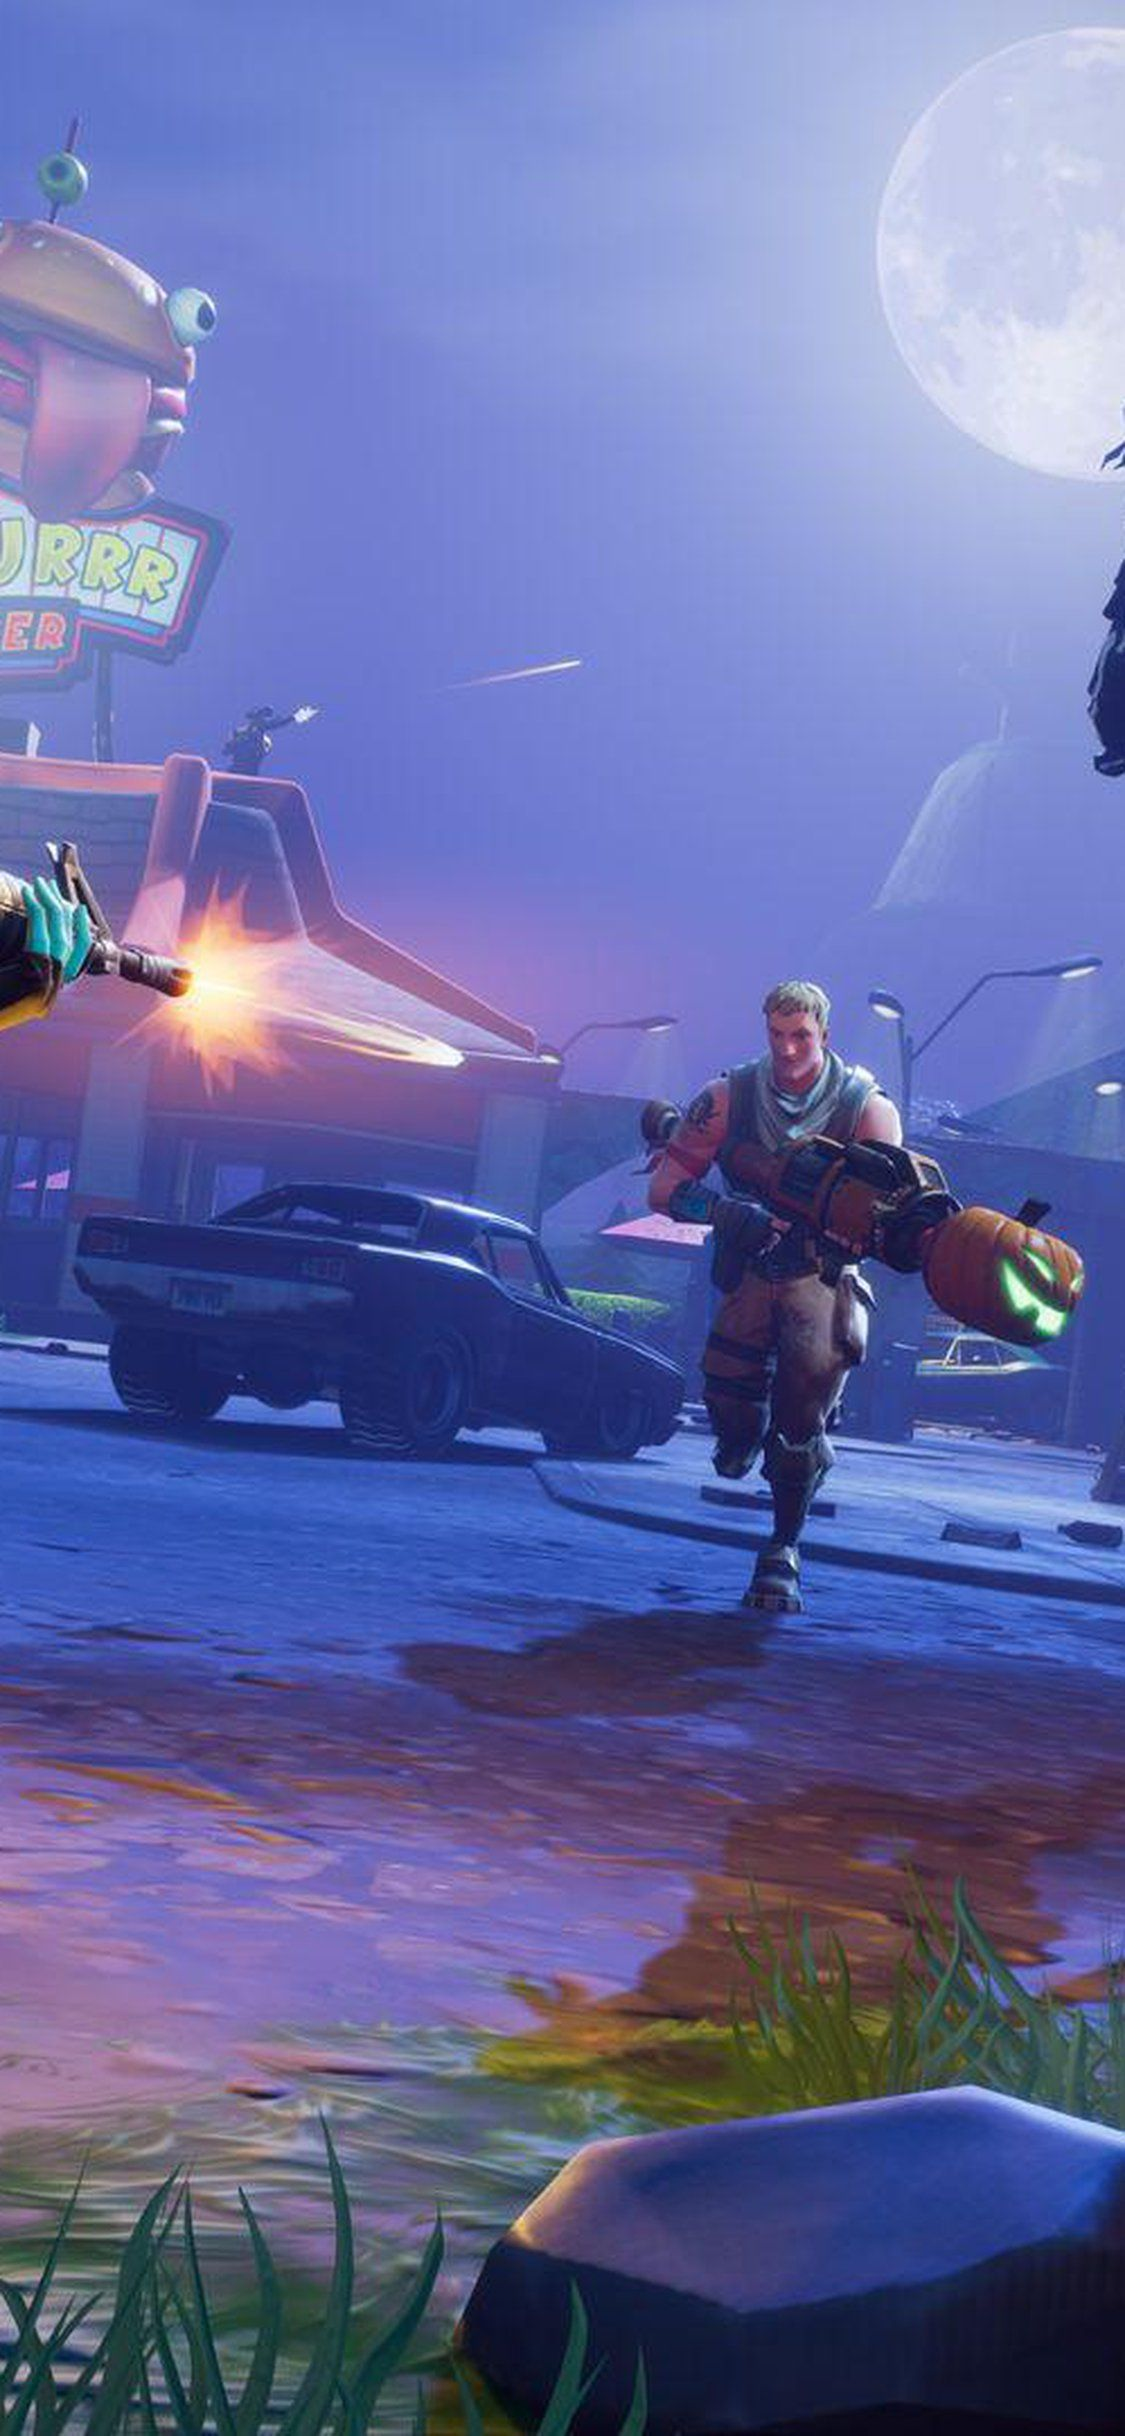 23 Best Free Fortnite Iphone Wallpapers Wallpaperaccess